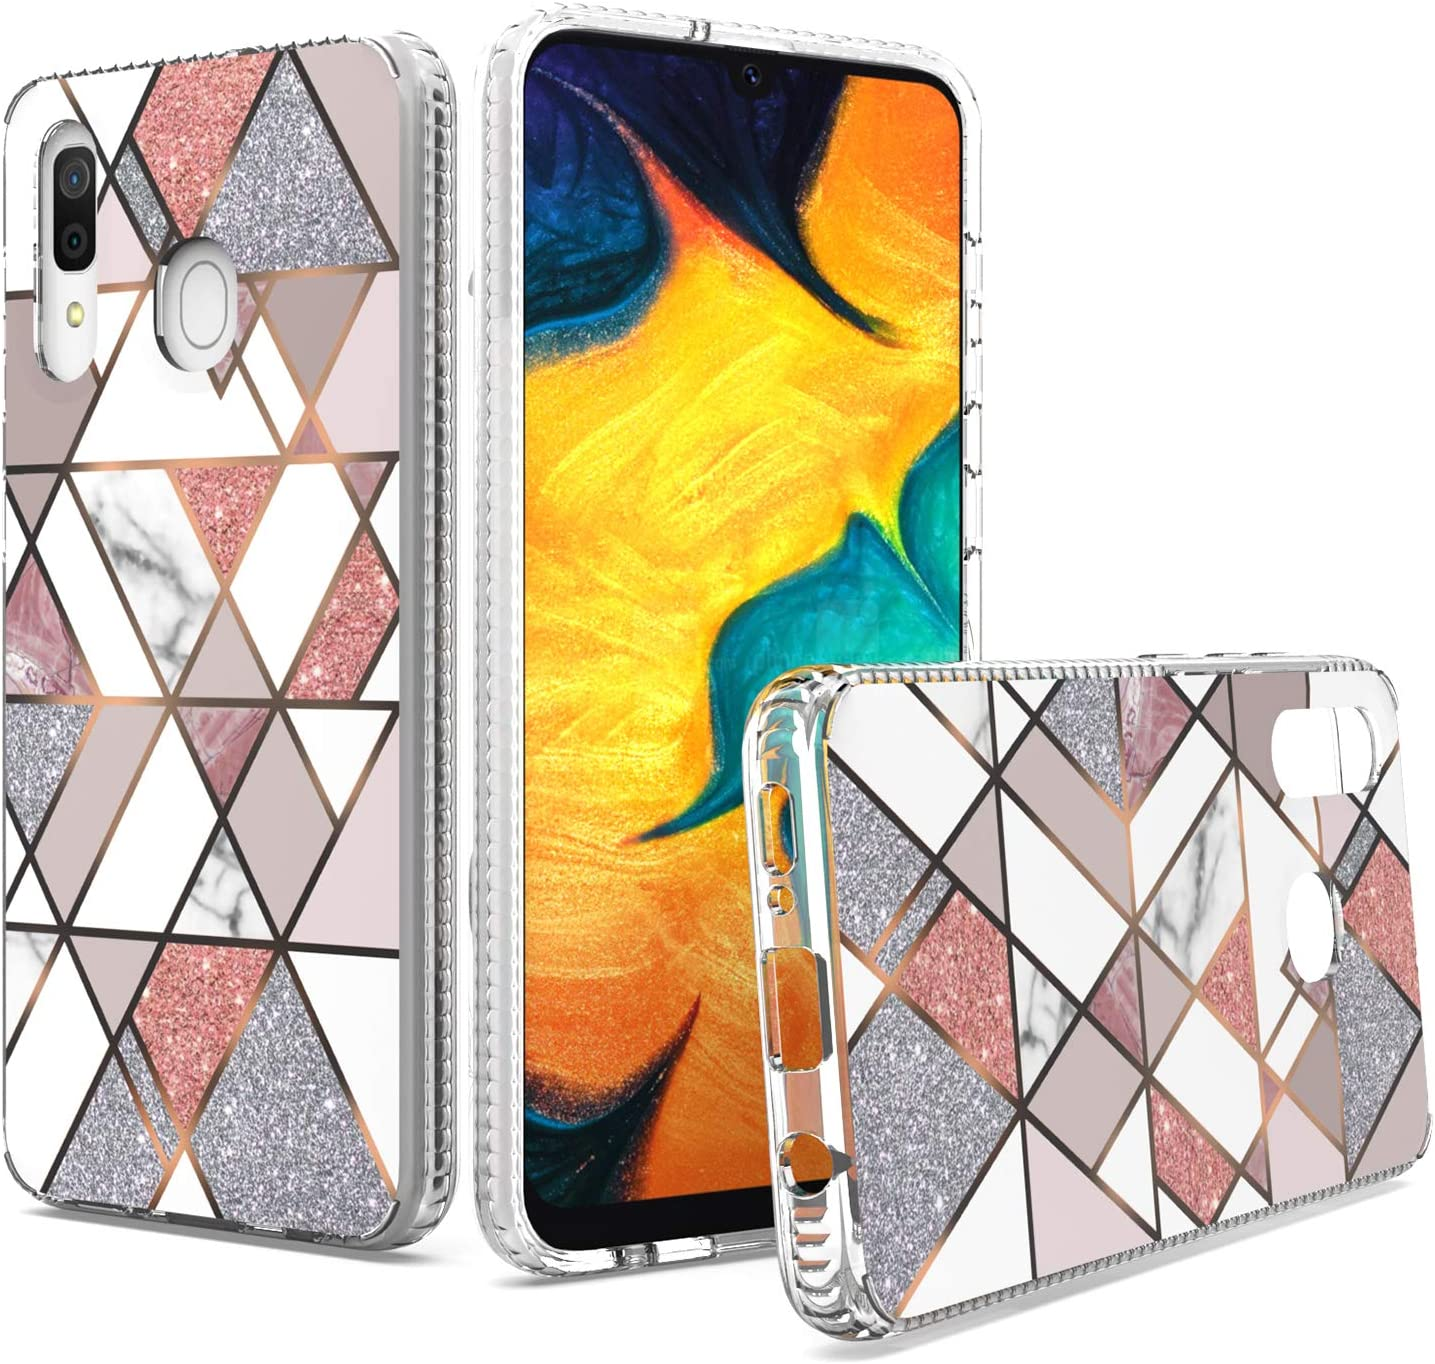 UNC Pro Cell Phone Case for Samsung Galaxy A20 / A30 / A50, Geometry Marble Military Grade Glitter Sparkle Hybrid Case, Shockproof Bumper Protective Case Cover